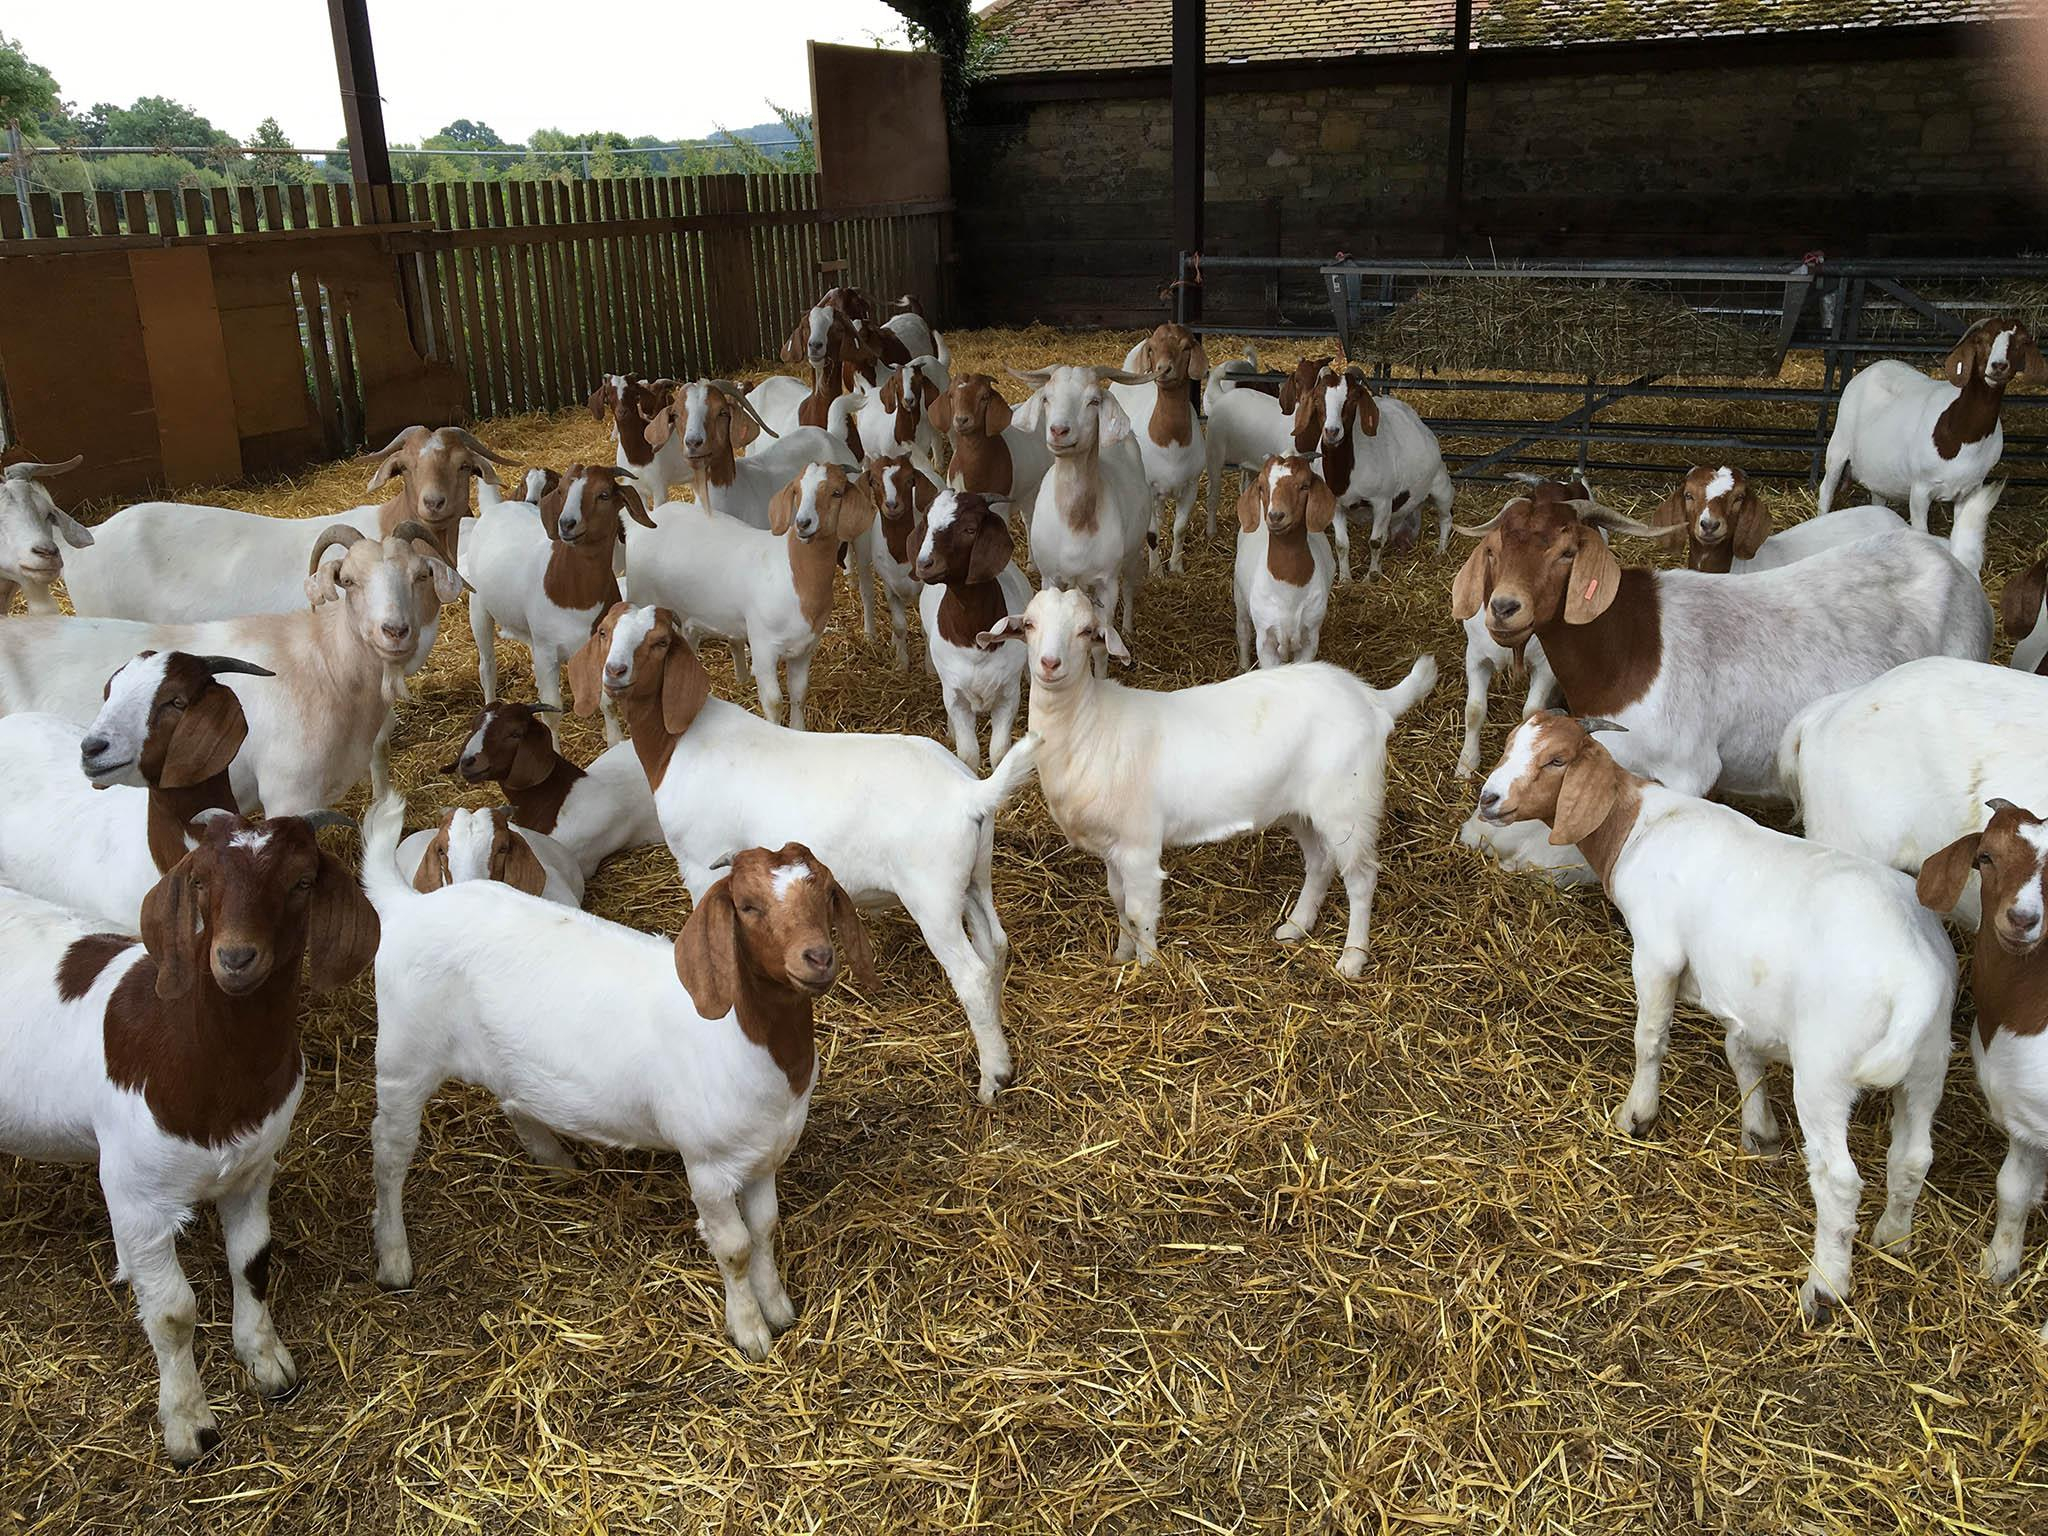 Boer Goats / Live Boer Goats Male and Female / Live Sheep, Cattle, Lambs and Alive Cows